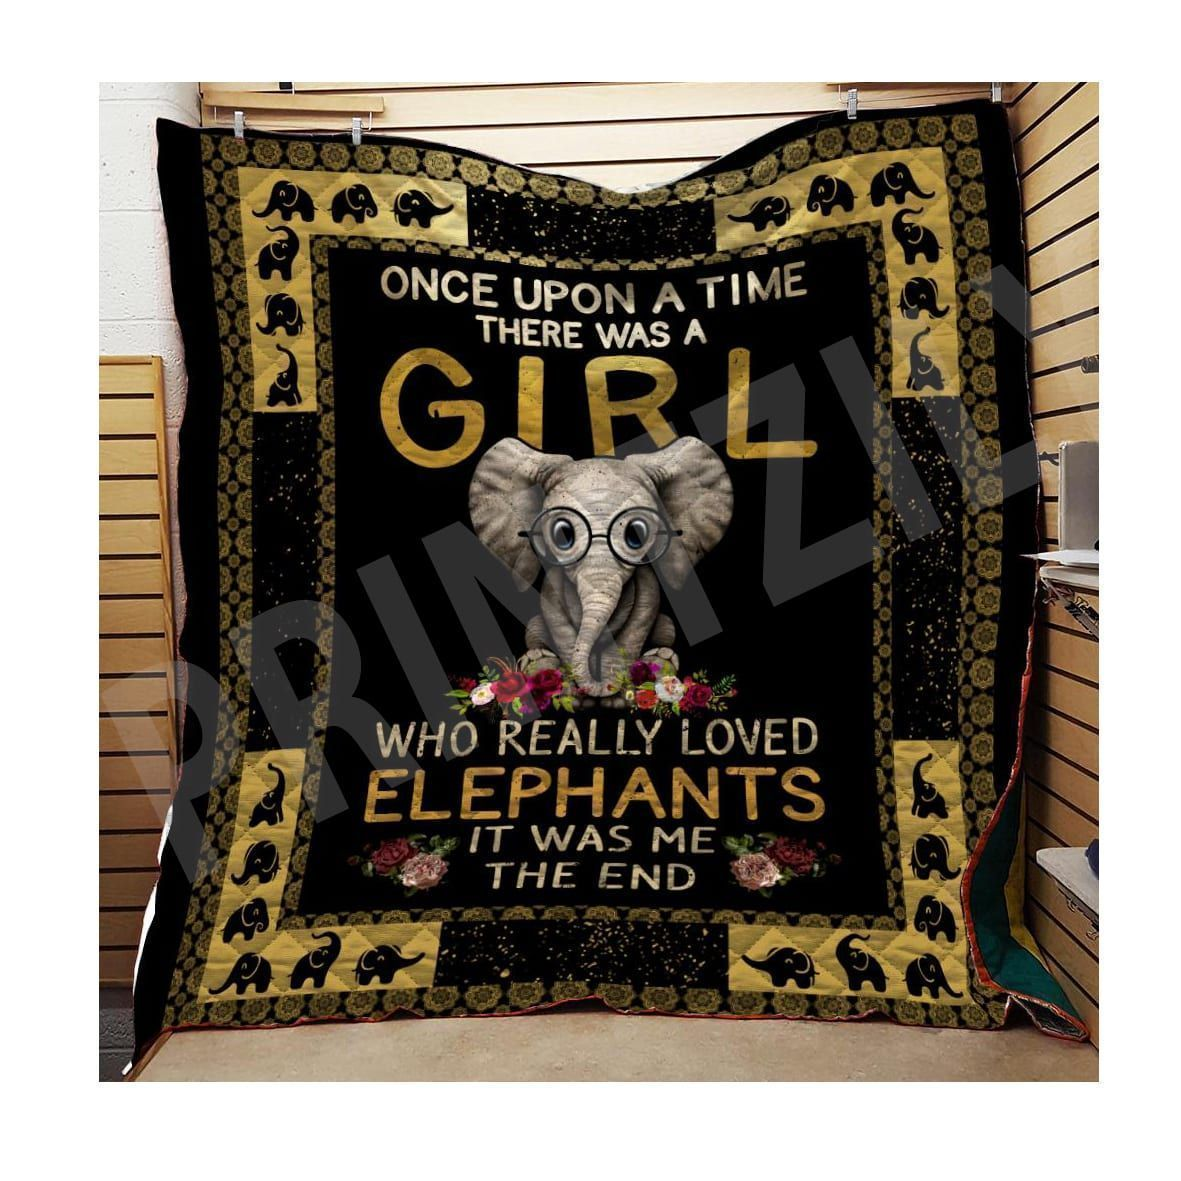 elephant once upon a time tqv030795 3d customized quilt 0